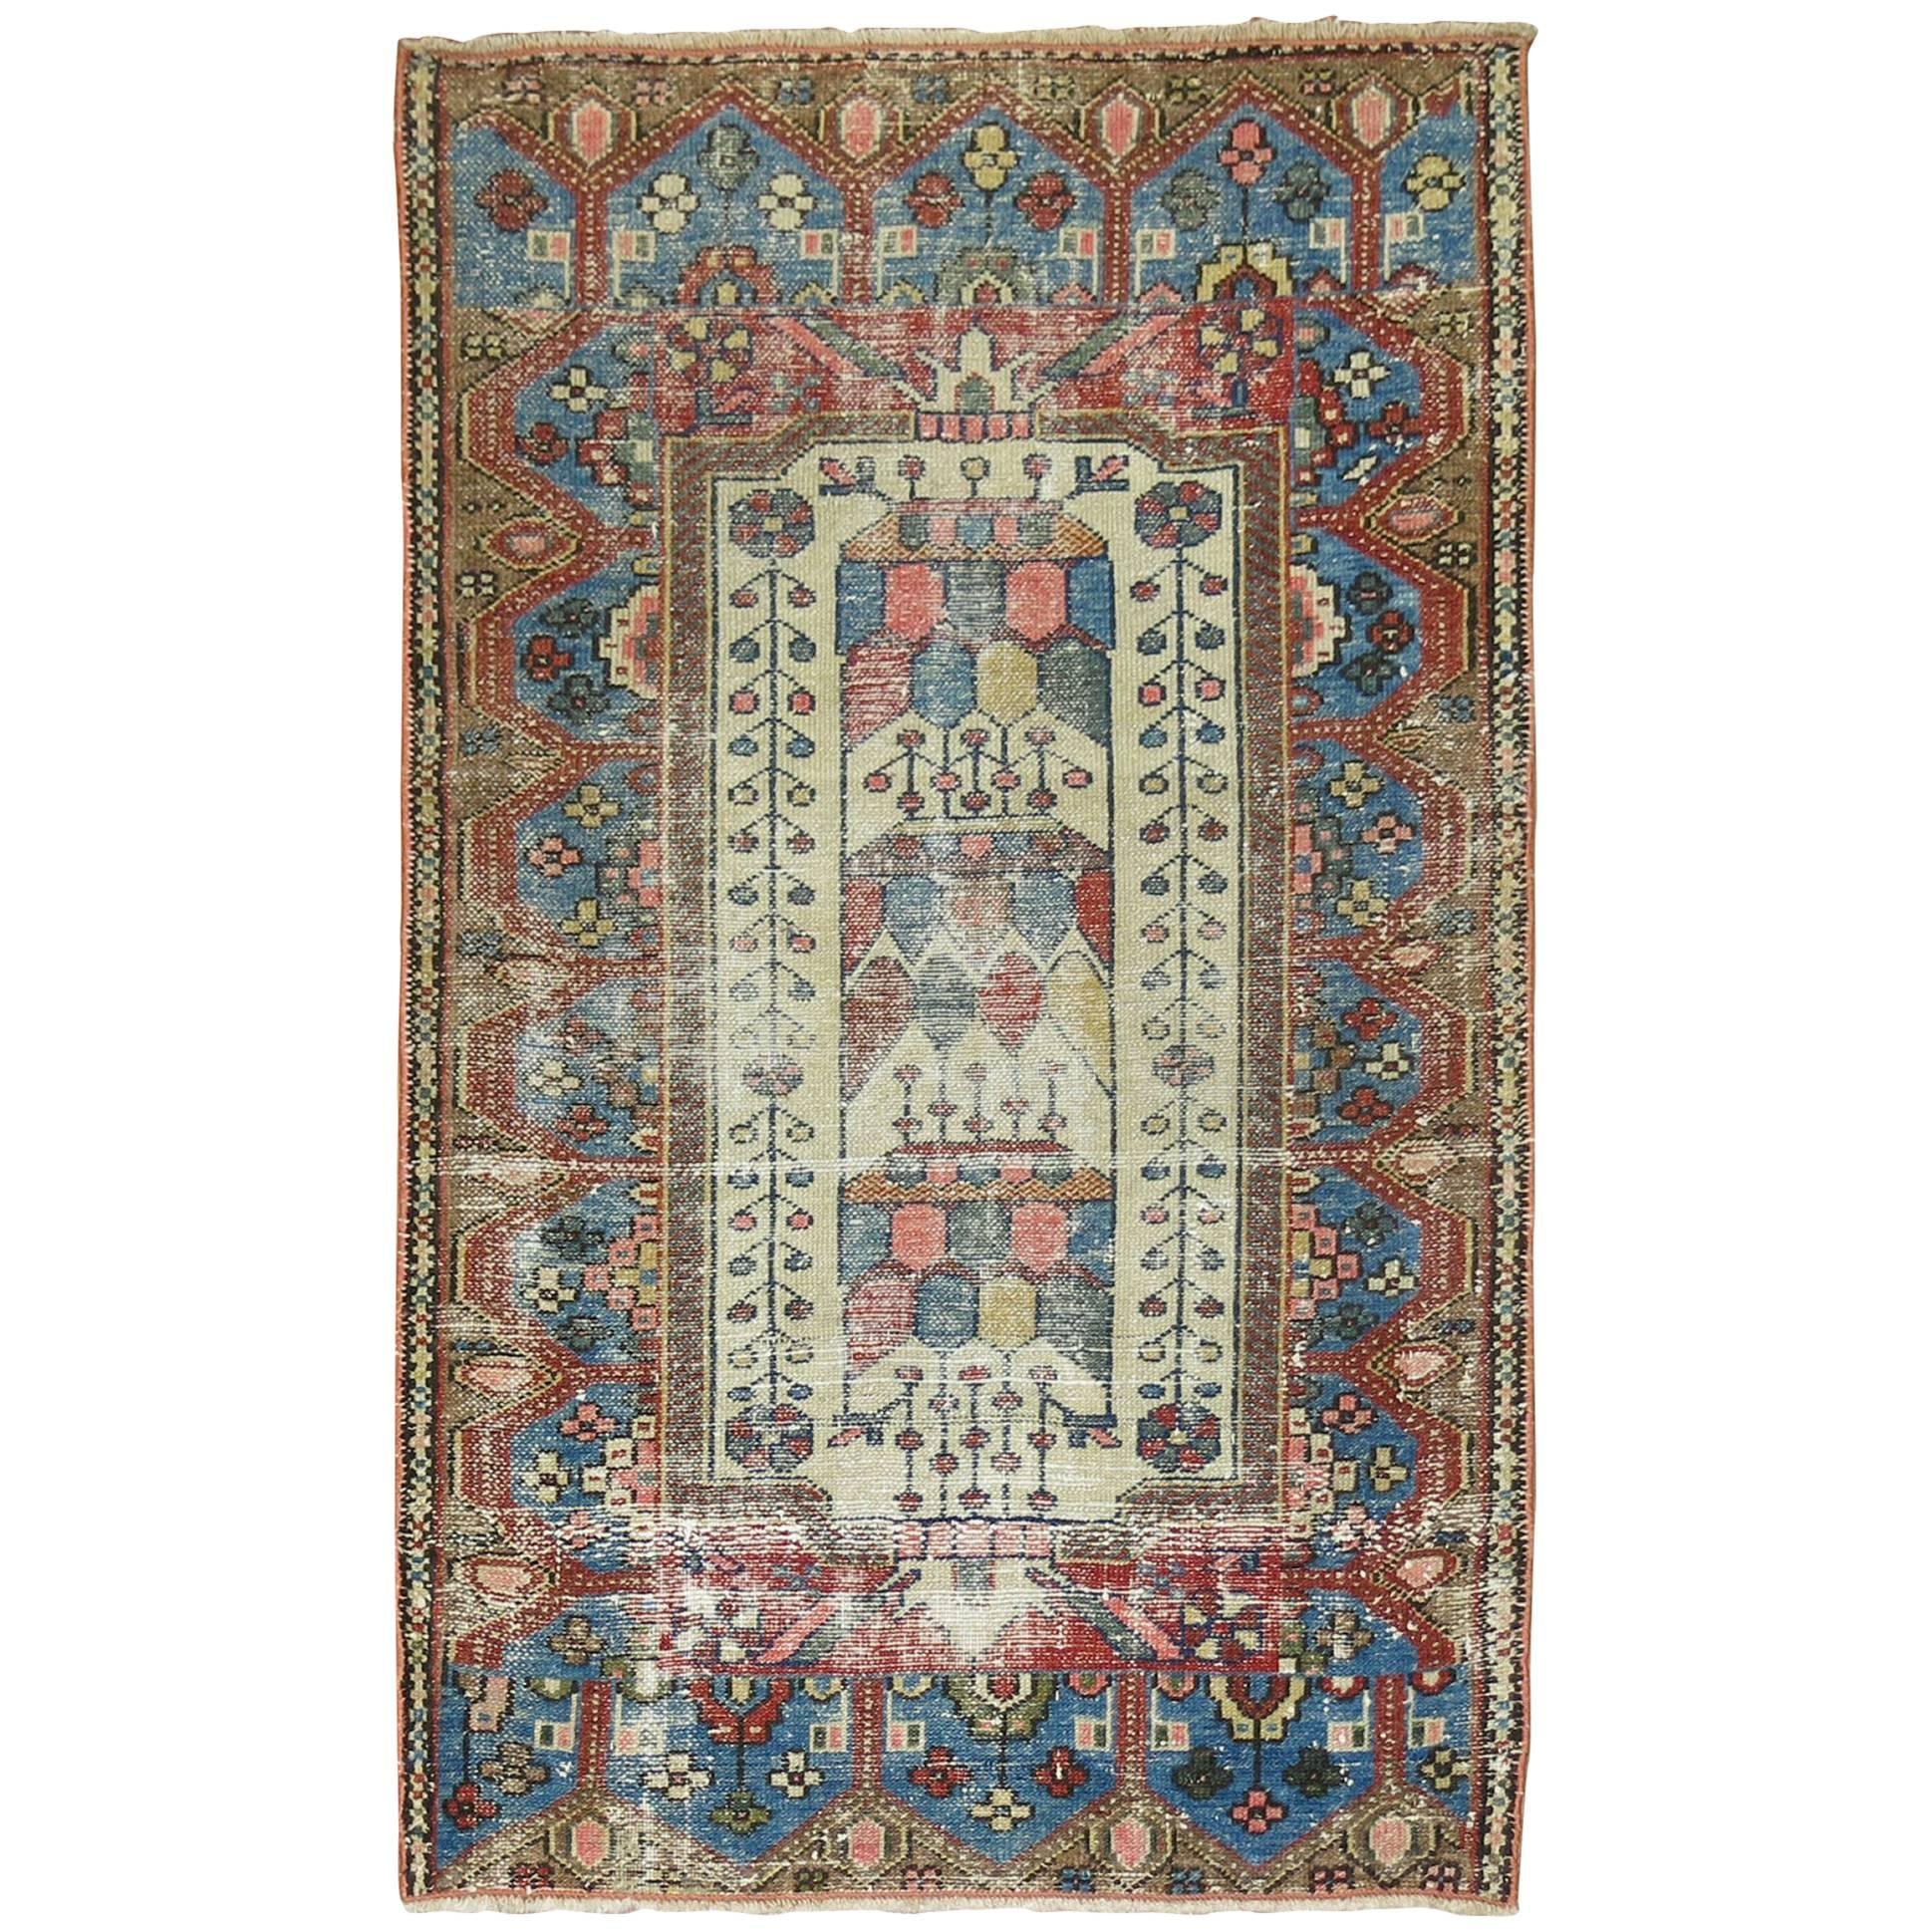 shabby chic persian malayer tiny rug for sale at 1stdibs rh 1stdibs com shabby chic carpet ideas shabby chic wall to wall carpet